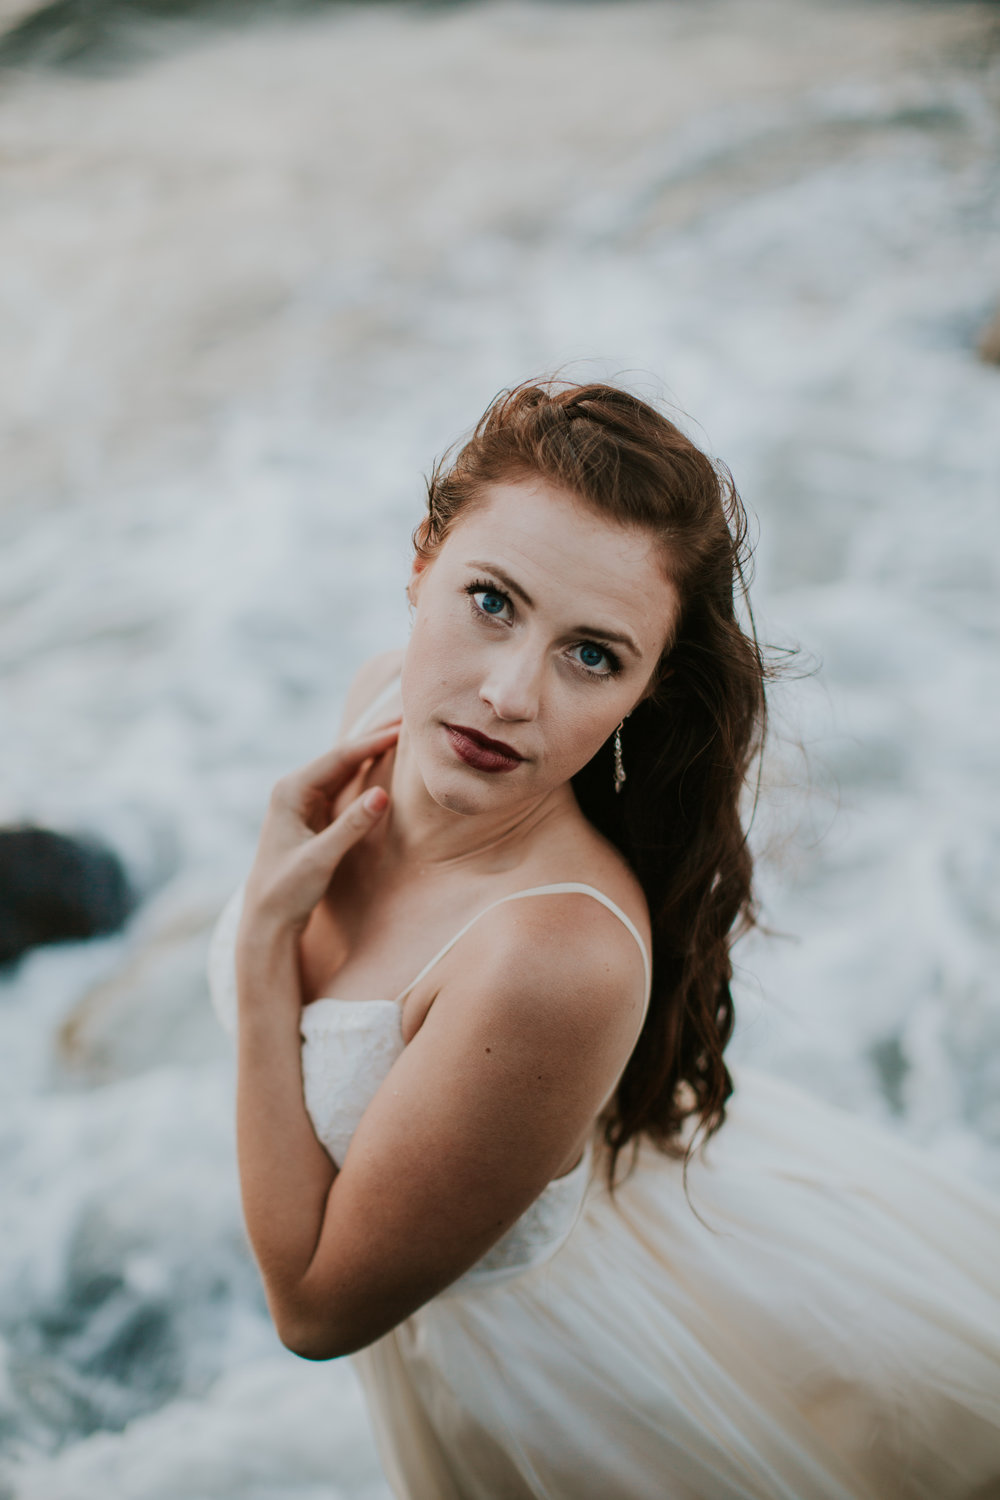 Port-Angeles-Photographer-Olympic-Peninsula-Wedding-Ediz-Hook-bride-dress-Kayla-Dawn-Photography-Olympic-Peninsula-PNW-Photographer-Portrait-Portraiture-Natural-Golden-Hour-Beach (15).jpg